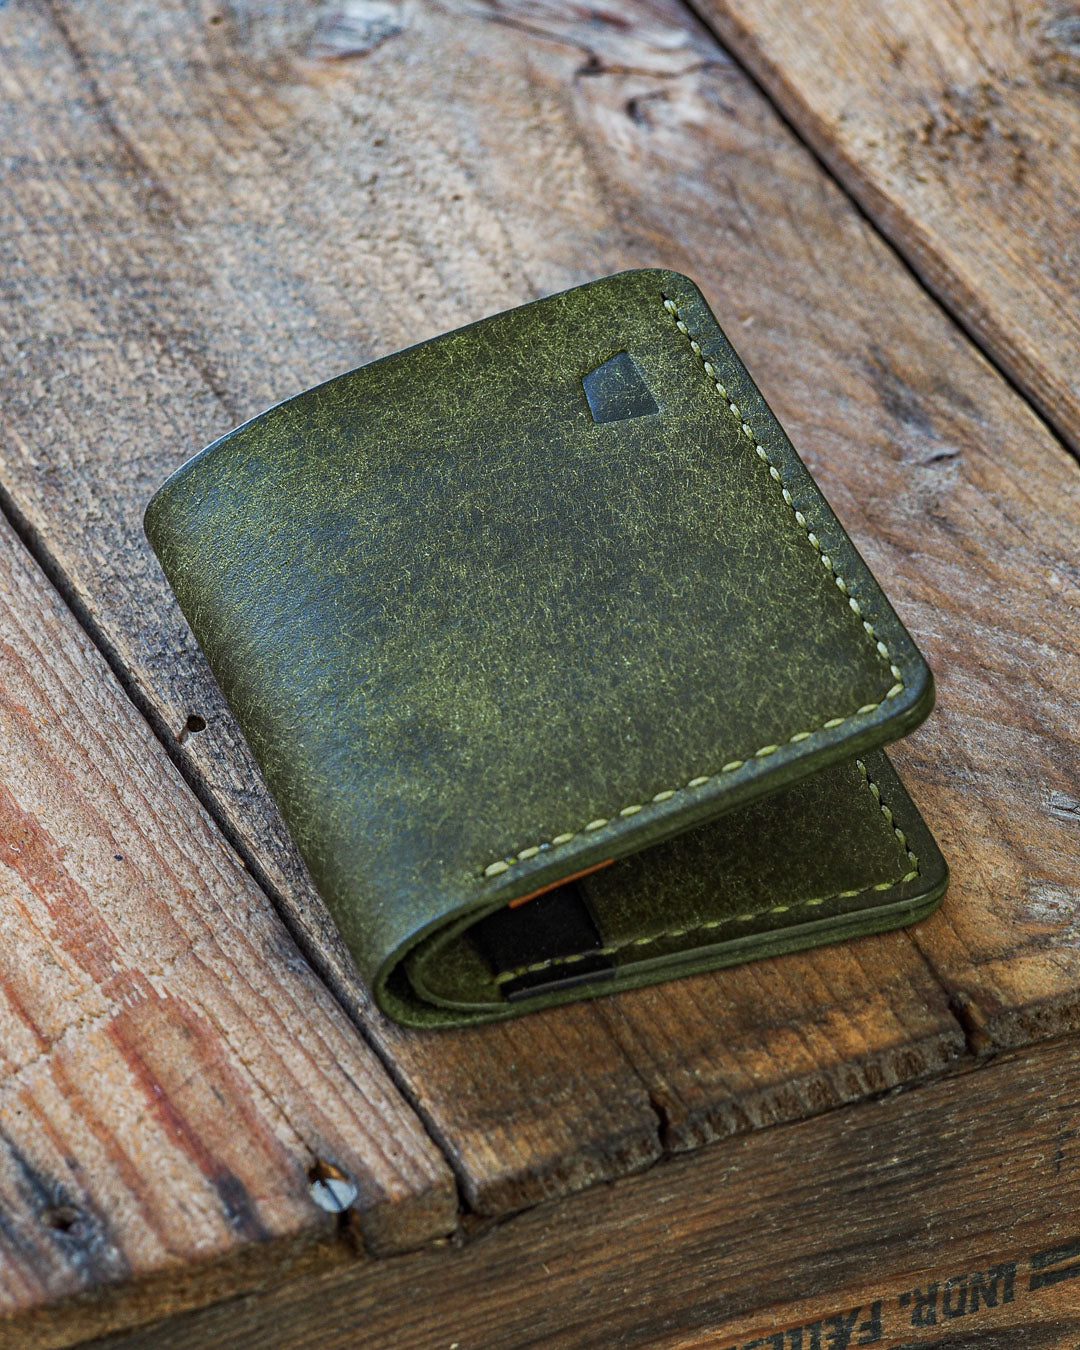 Luava handmade leather wallet NERO card holder cardholder handcrafted pueblo olive black cognac back closed angle